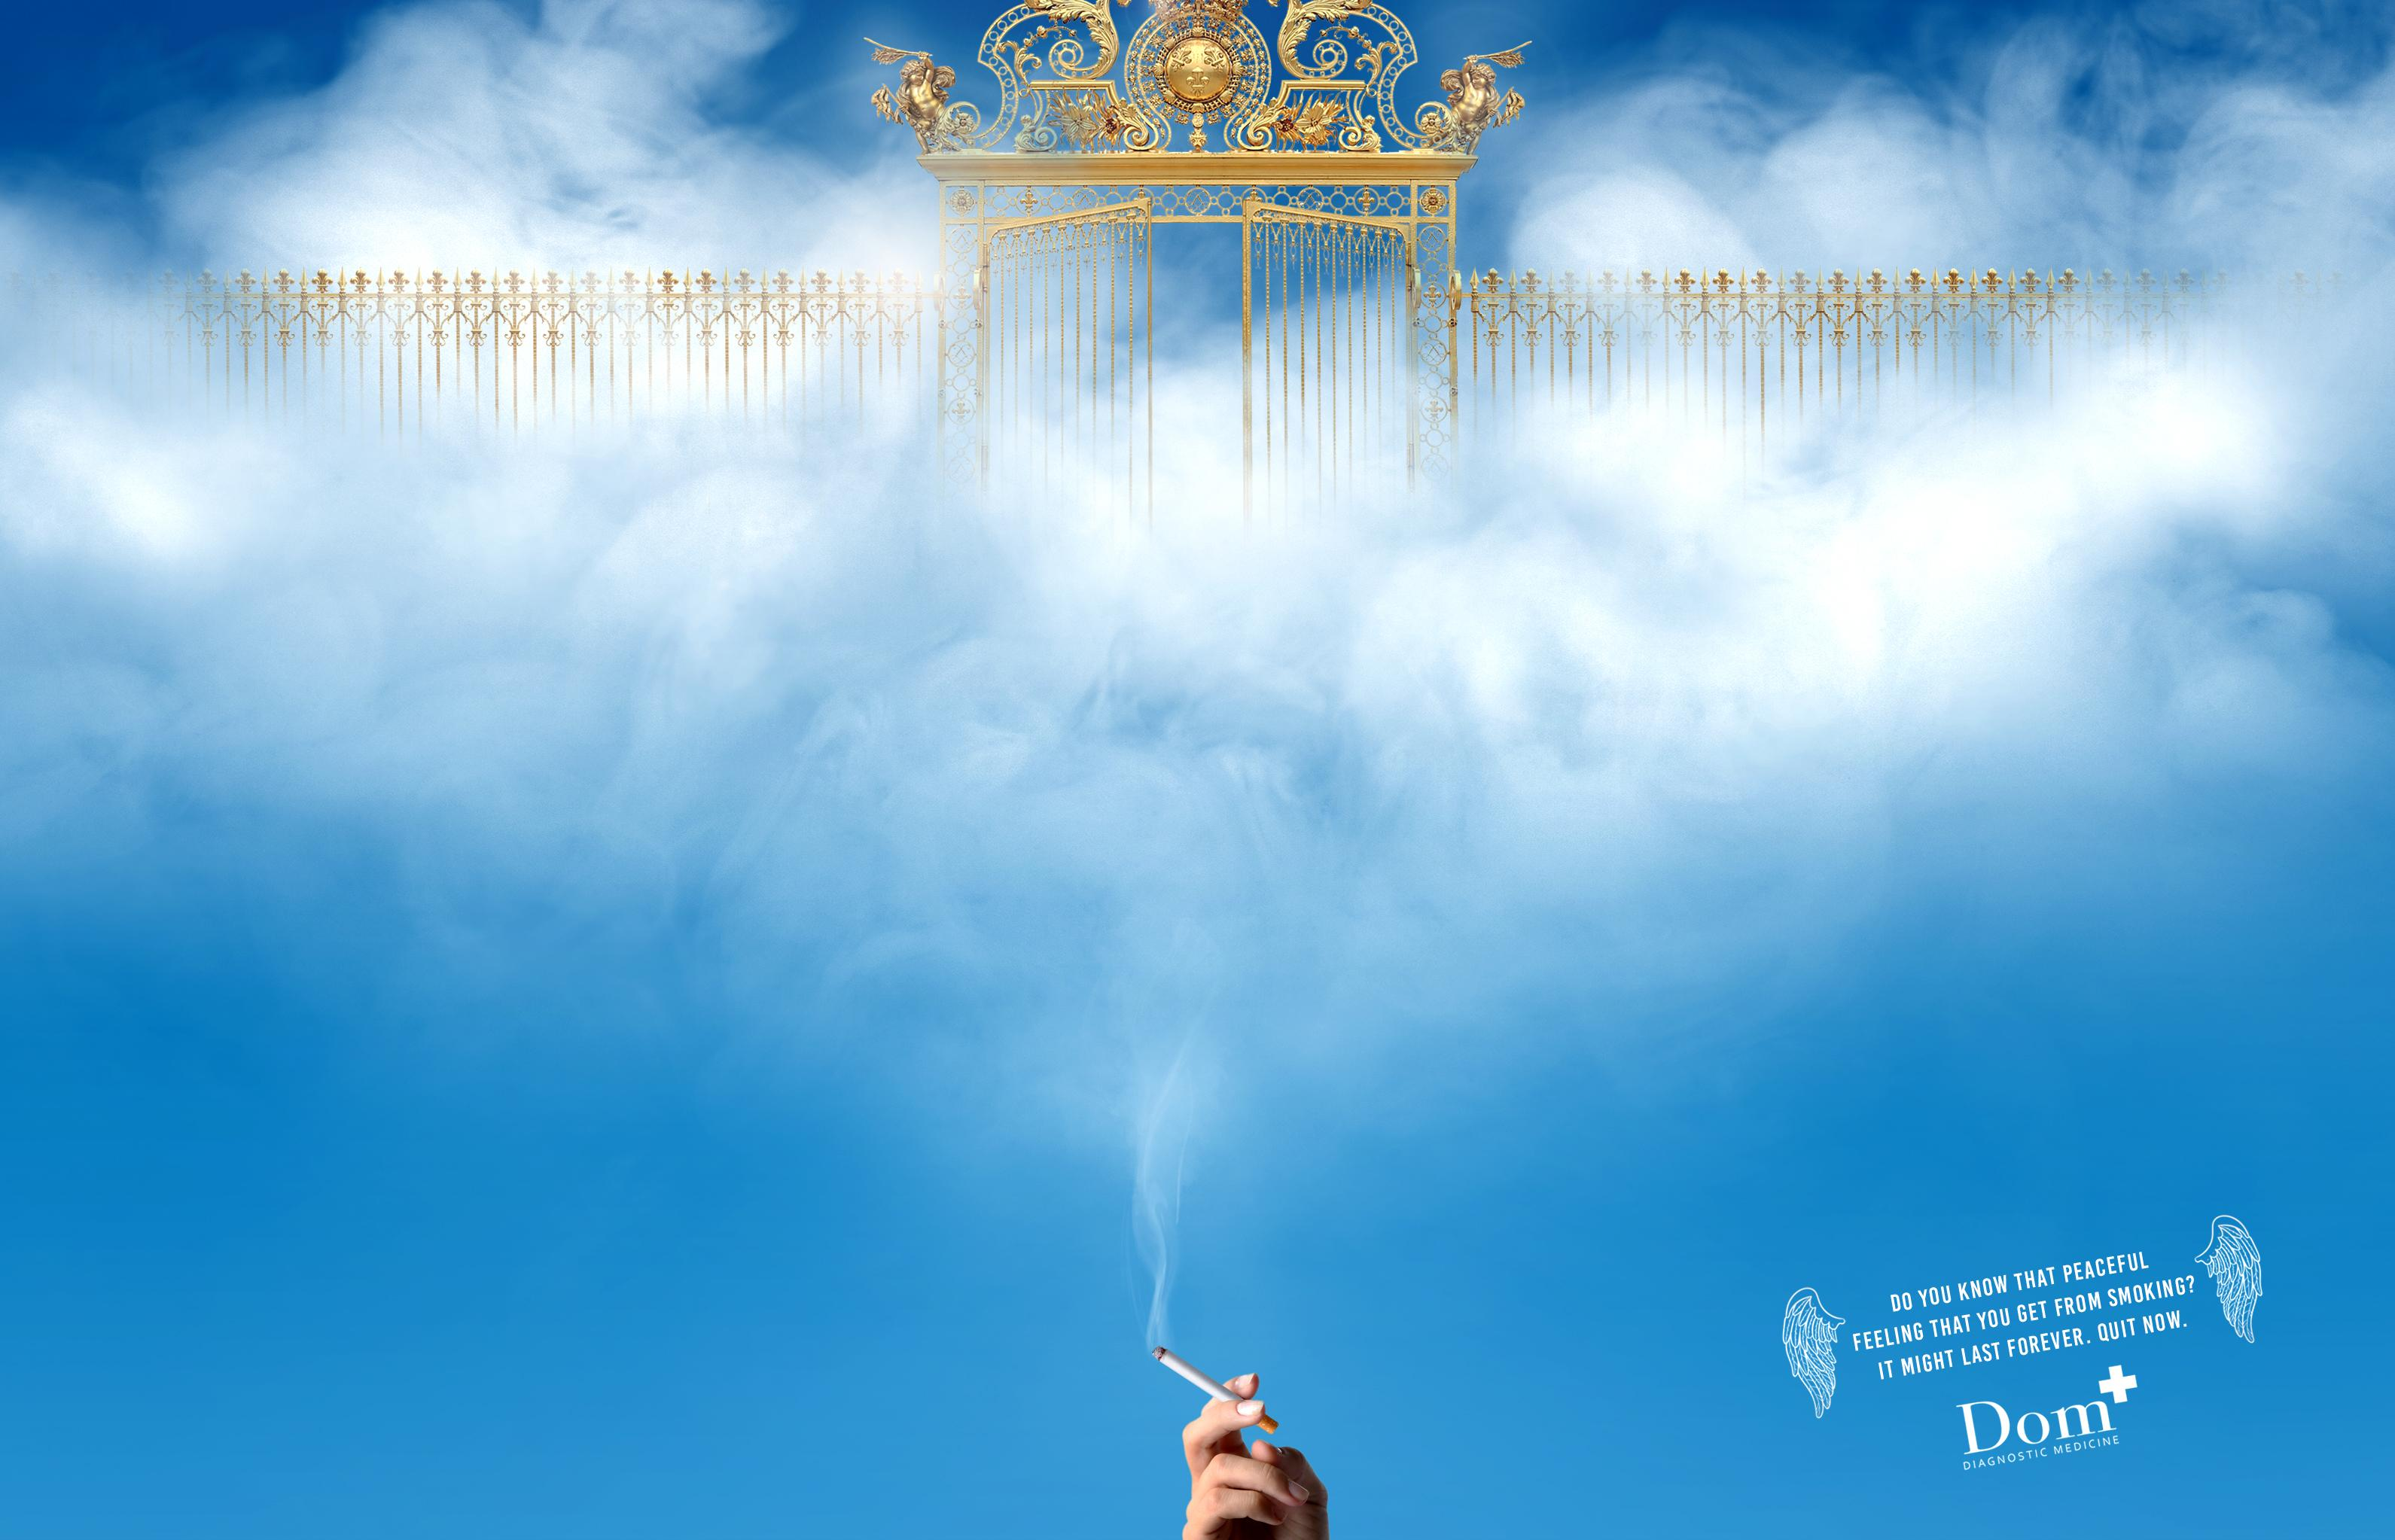 Dom Diagnostic Medicine Print Ad - Stop Smoking